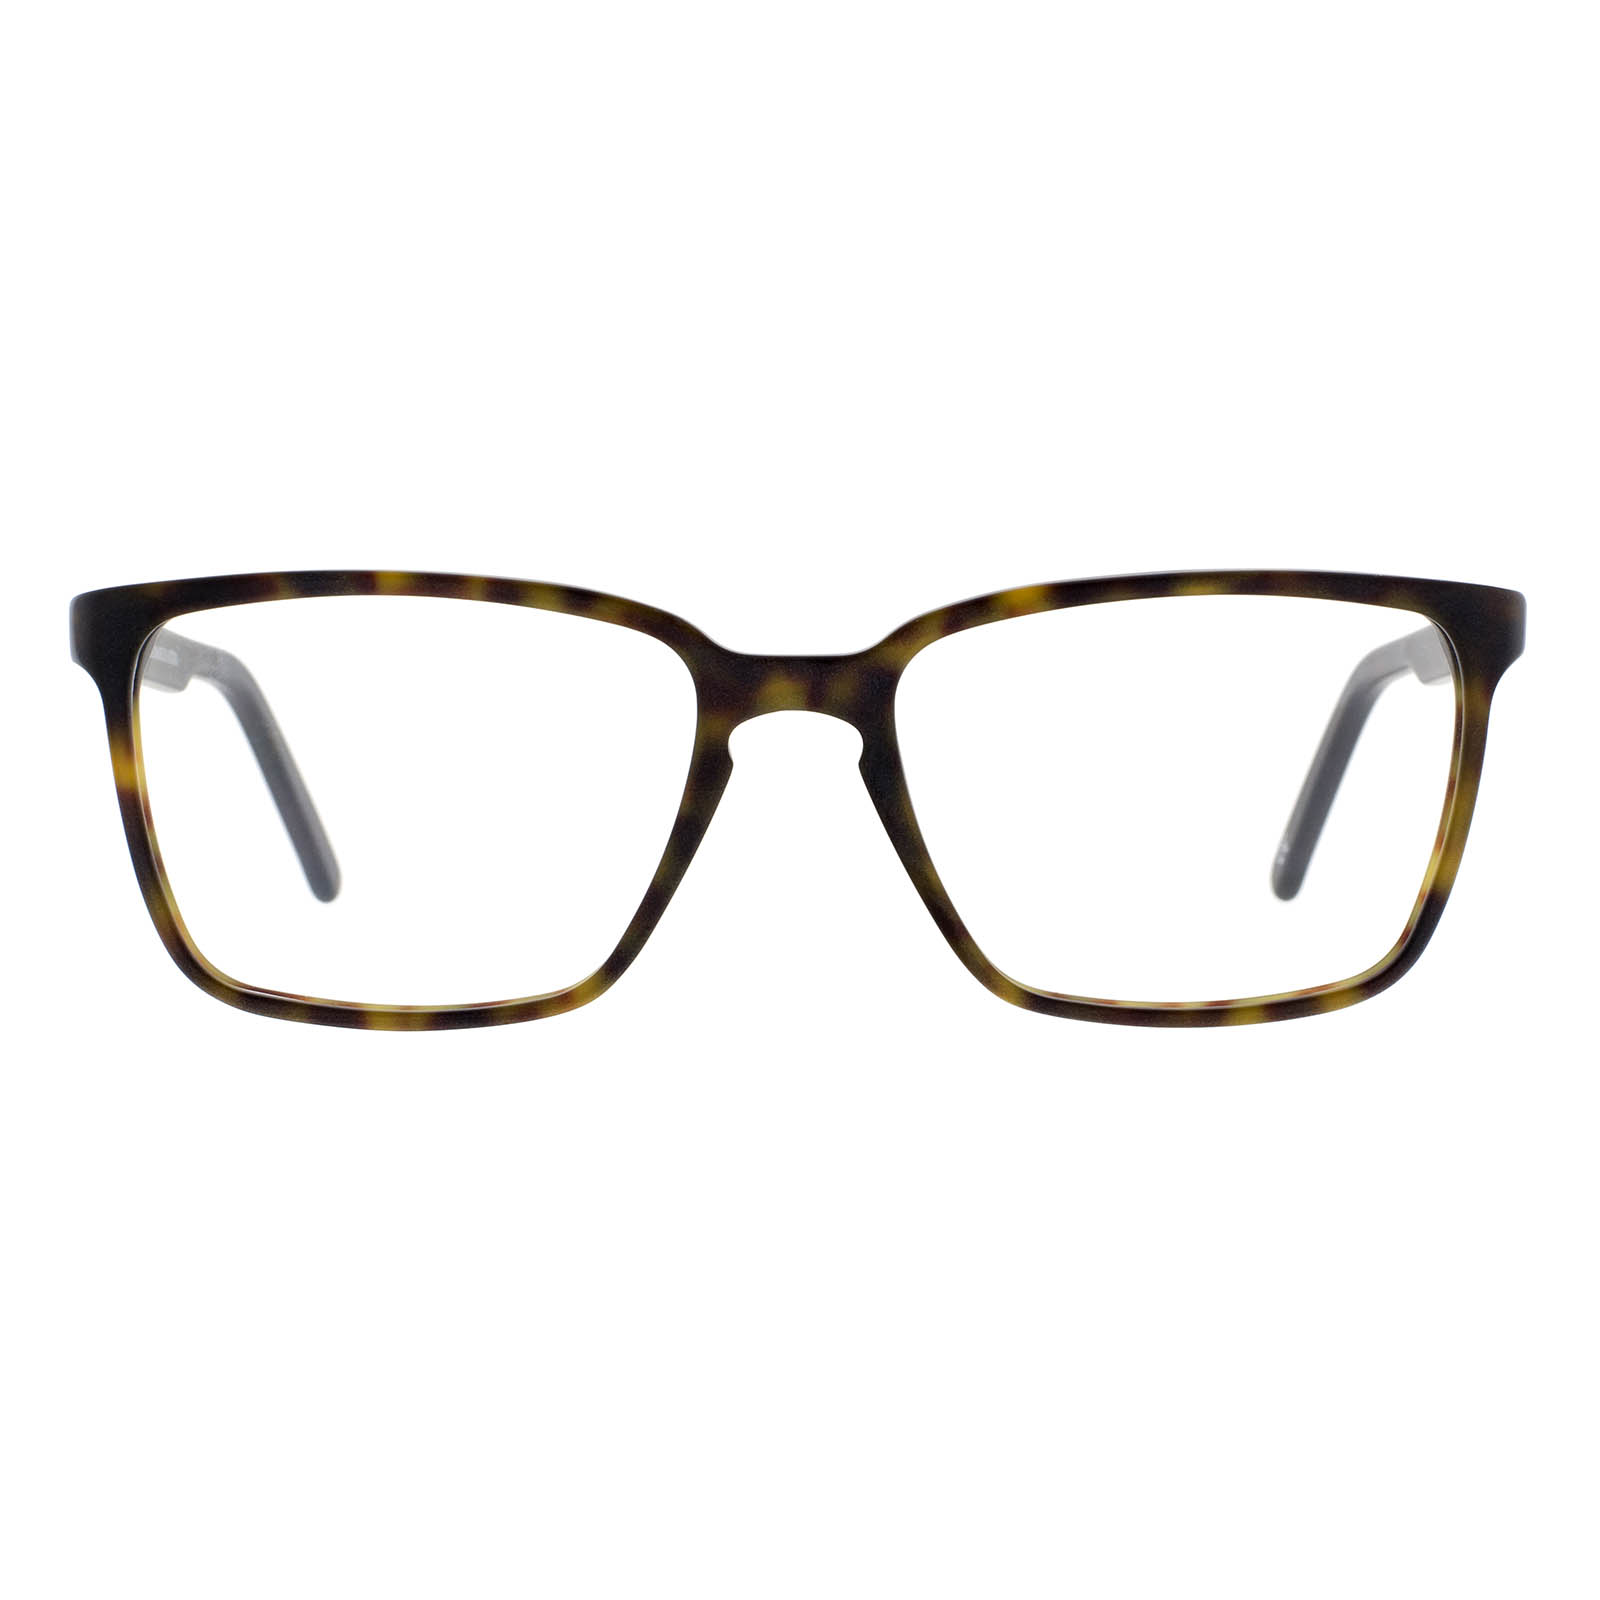 ANDY WOLF EYEWEAR_4490_X_front